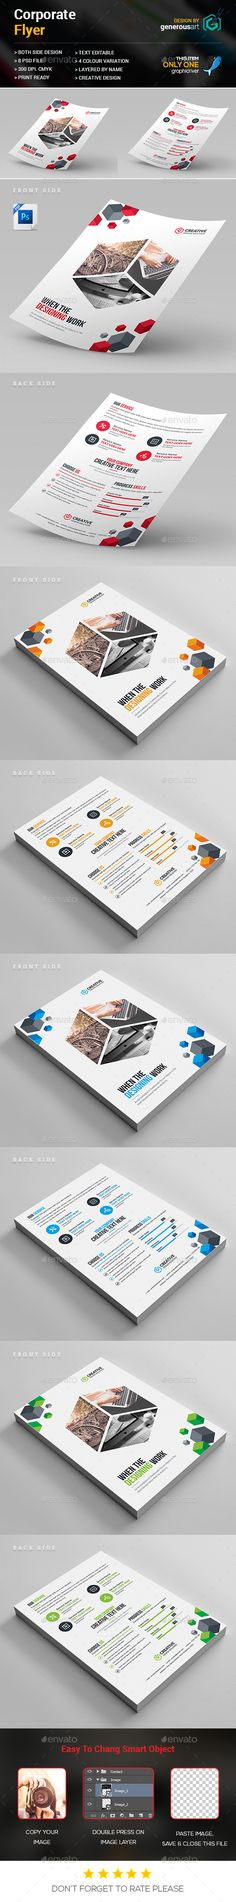 Corporate Business Flyer Template PSD. Download here: https://graphicriver.net/item/corporate-business-flyer/17033300?ref=ksioks